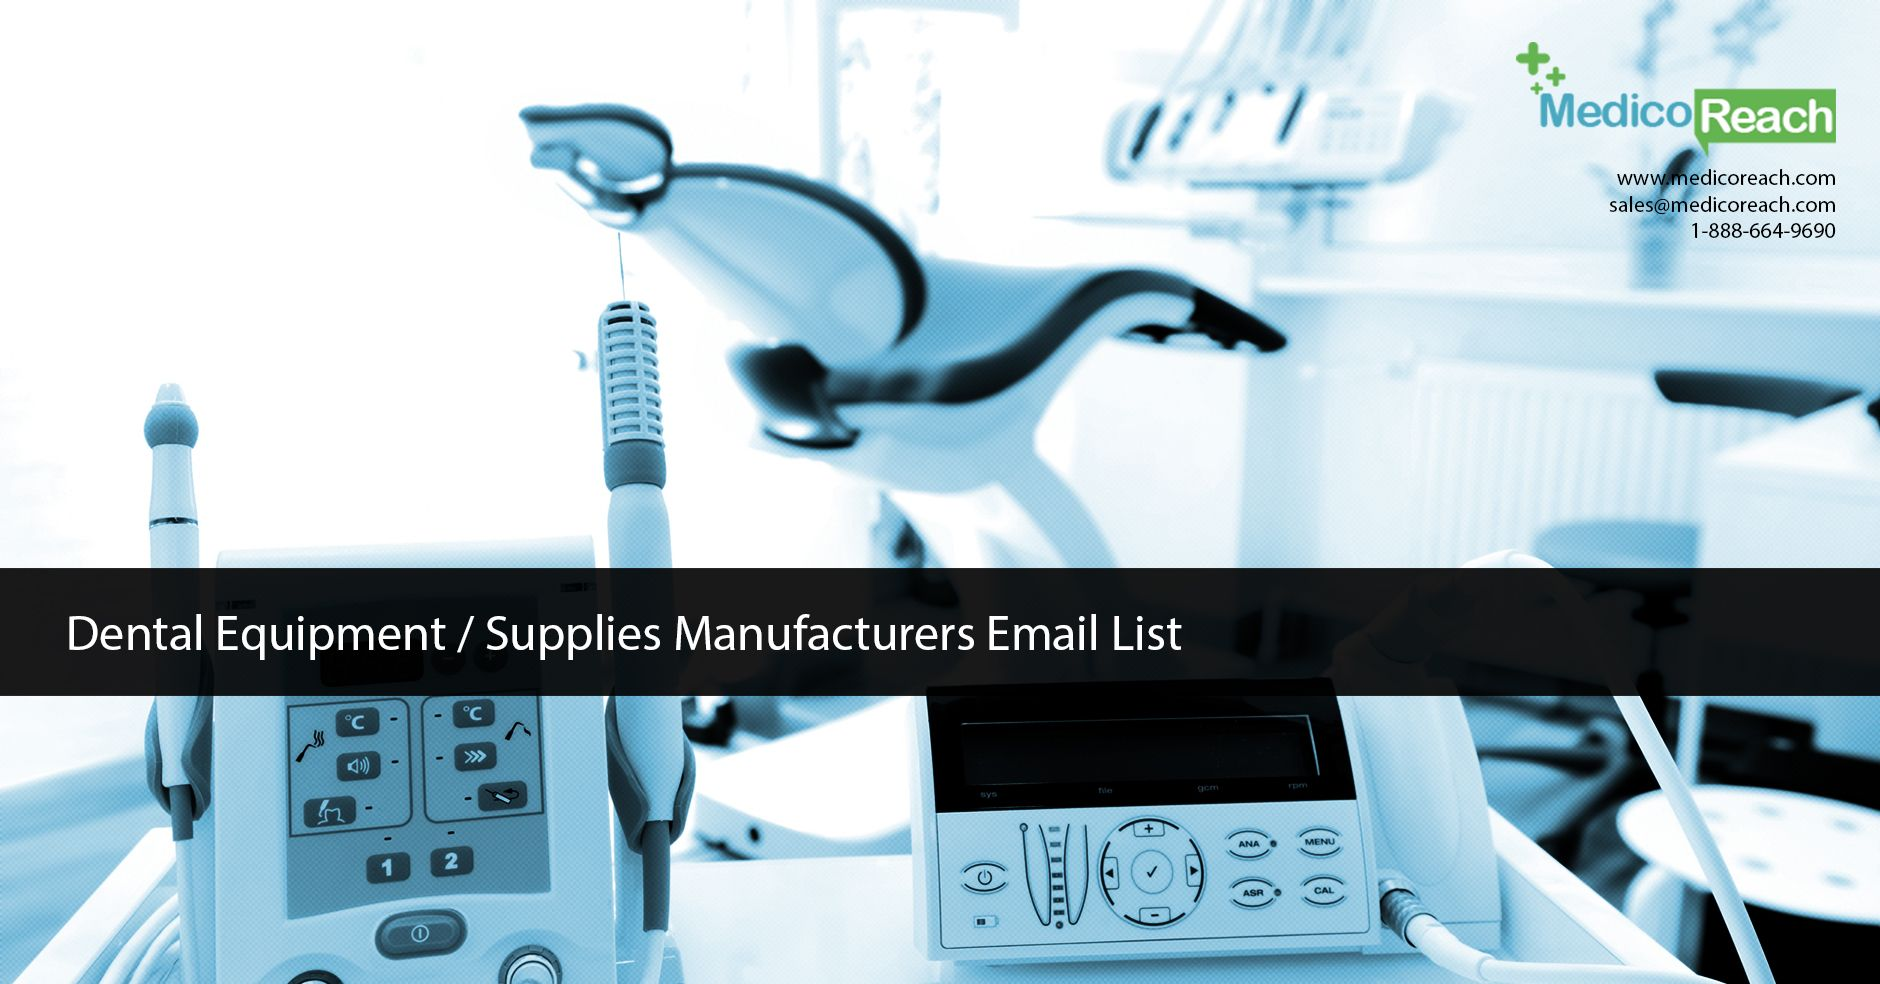 Dental Equipment Manufacturers in the USA Email List